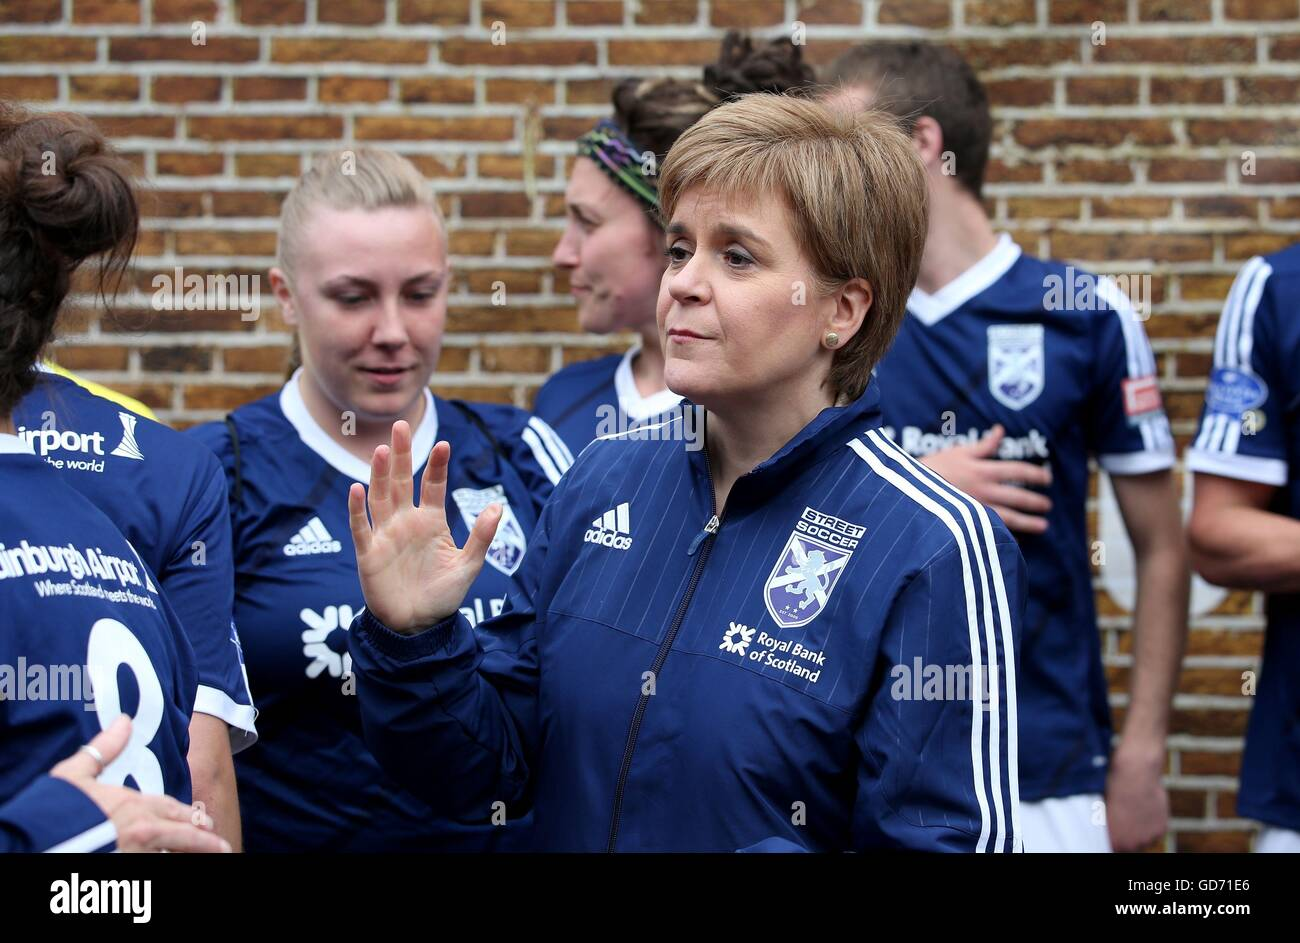 First Minister Nicola Sturgeon wears a Scotland team tracksuit top at the Homeless World Cup in George Square, Glasgow. - Stock Image